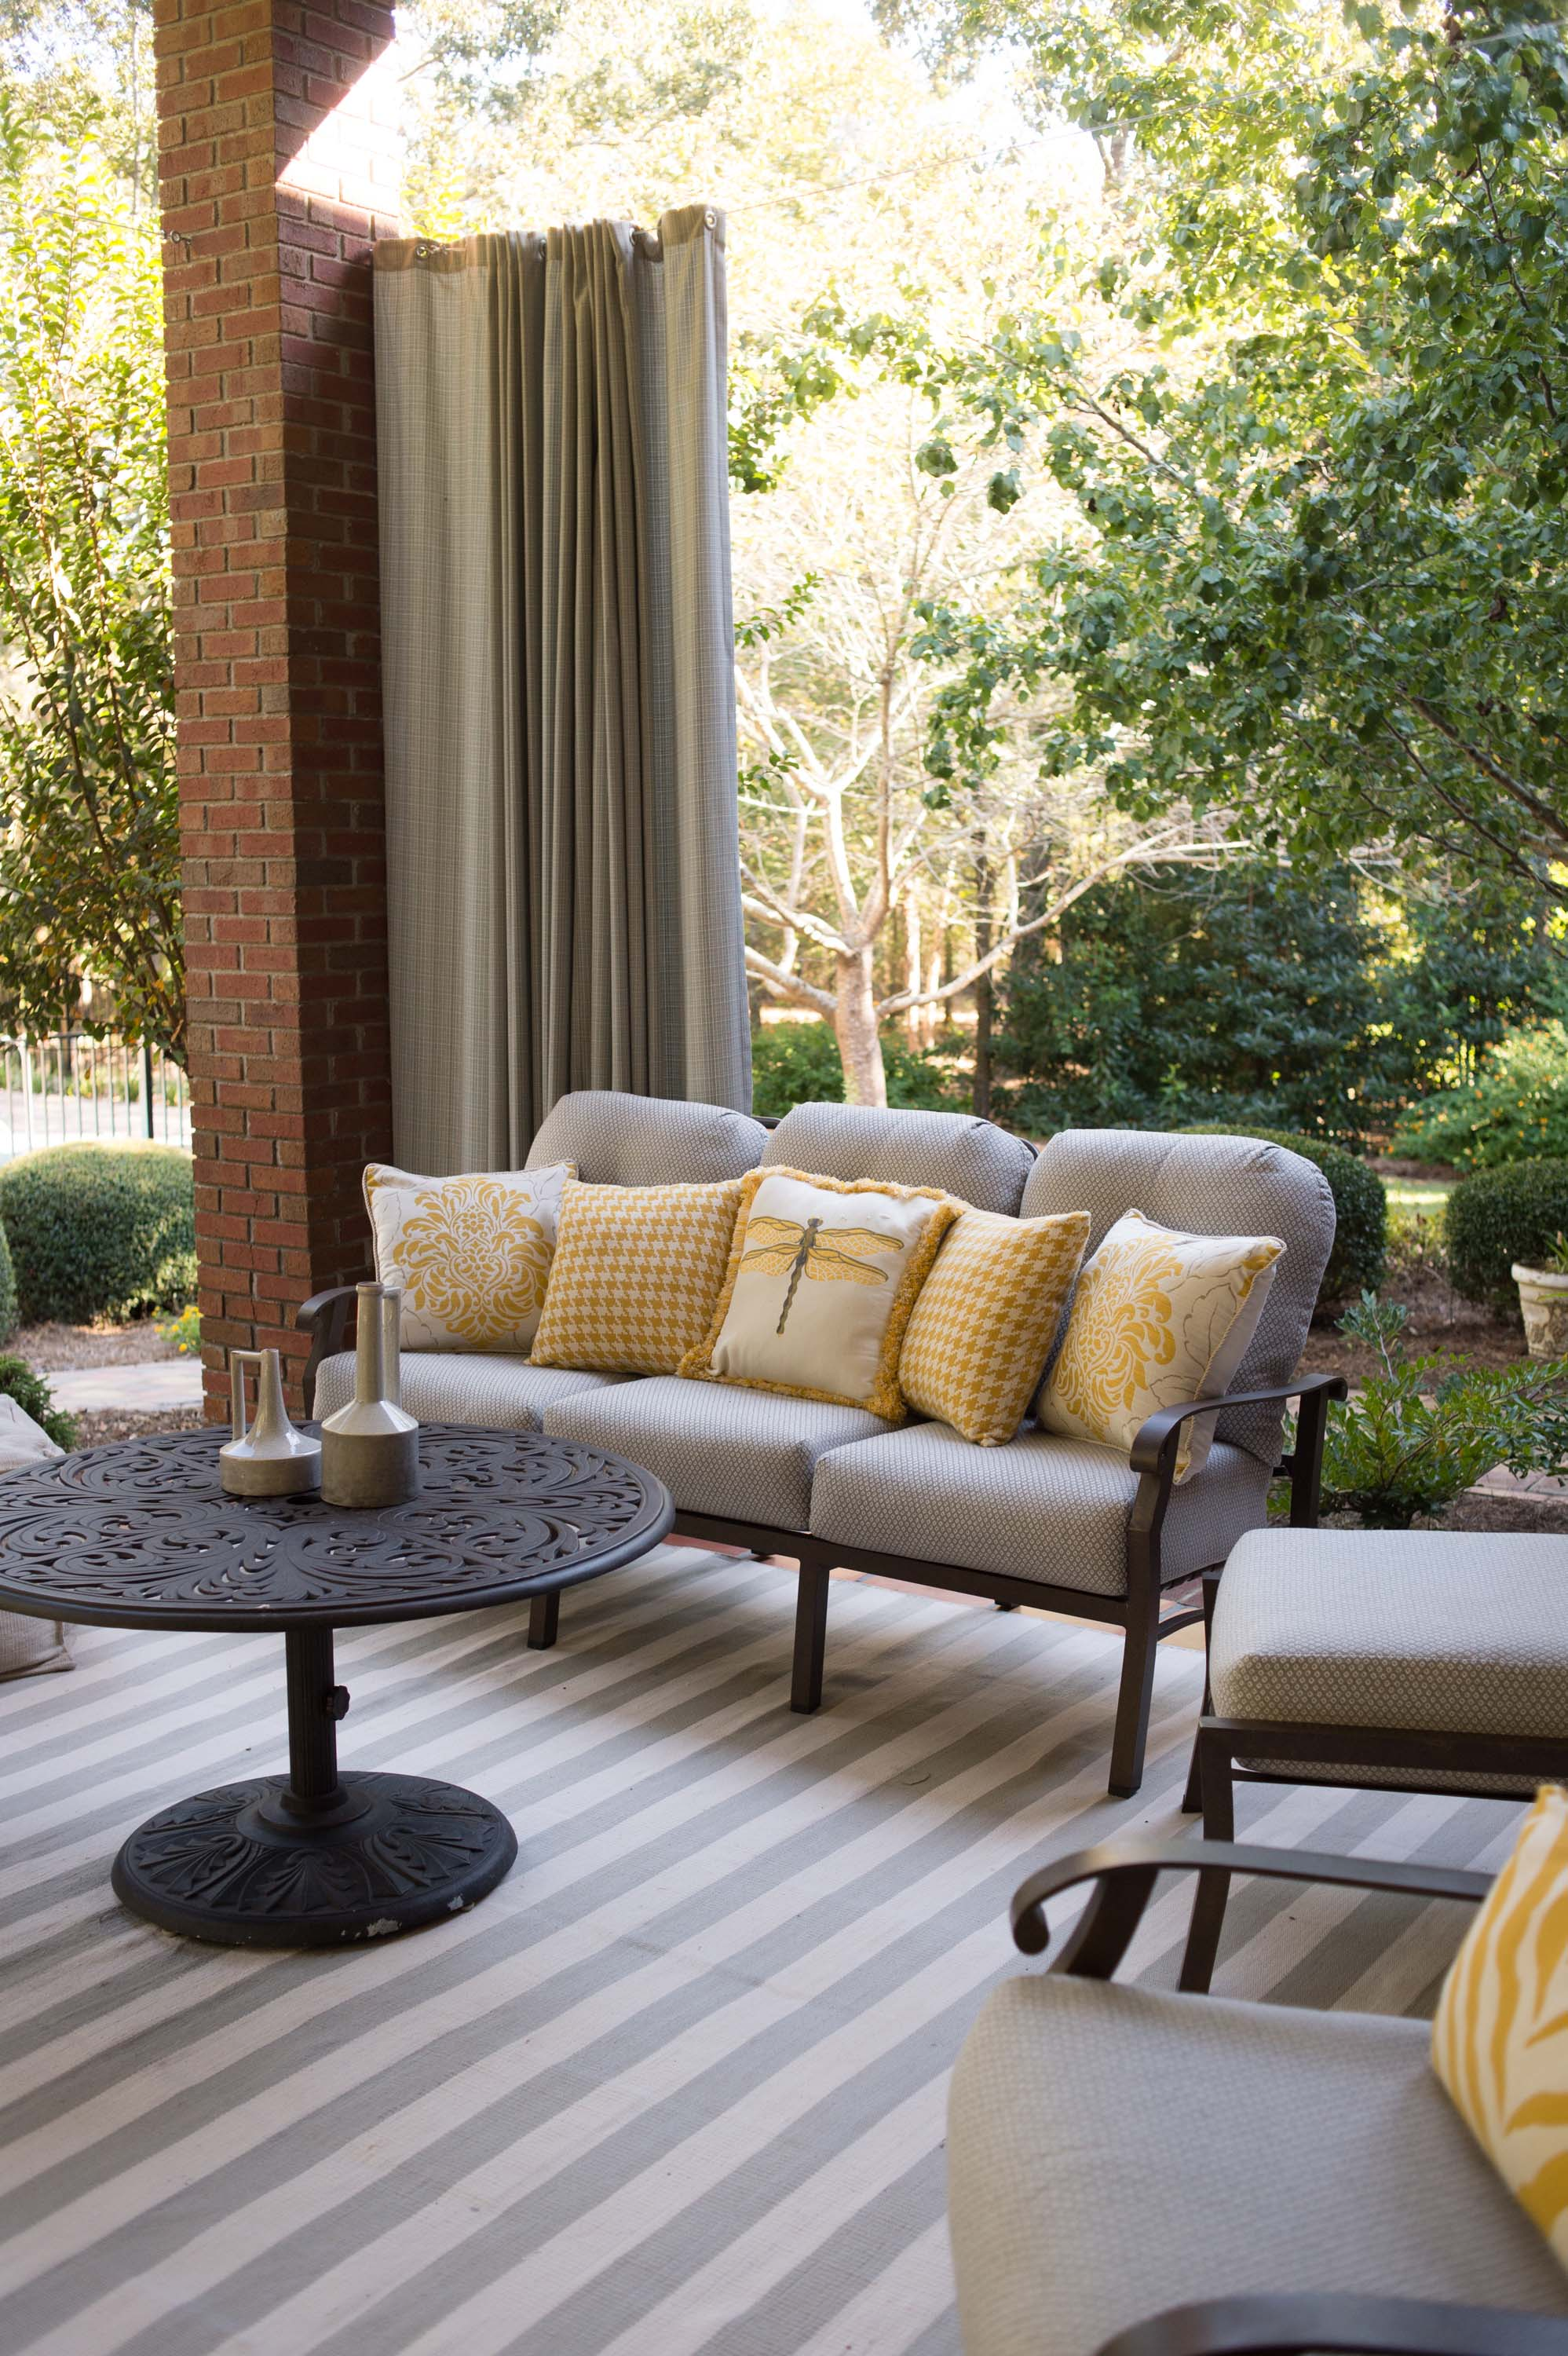 Outdoor patio with set of pillows on sofa